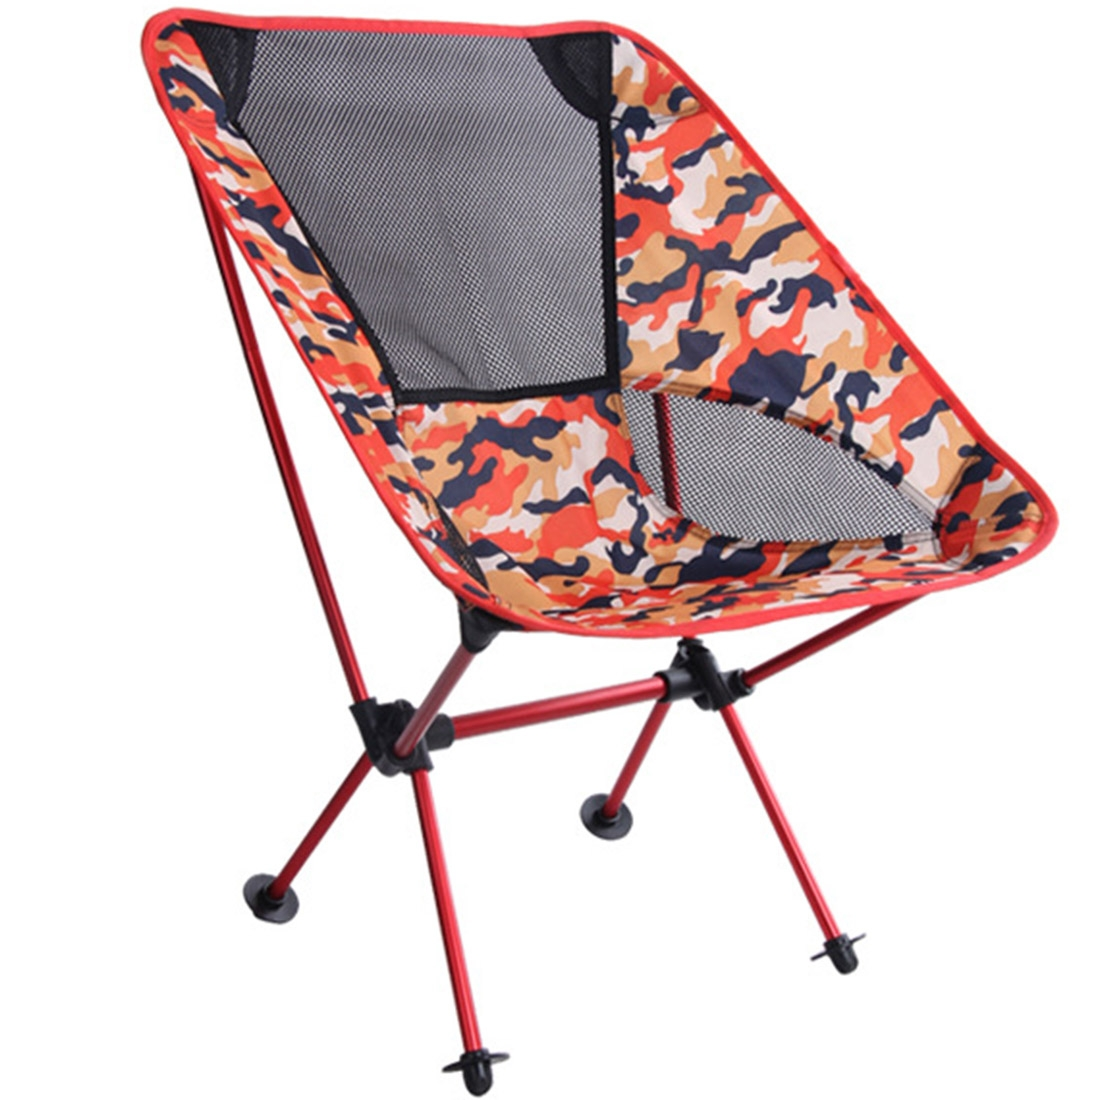 Portable Beach Chair Outdoor Camouflage Portable Folding Camping Chair Light Fishing Beach Chair Aviation Aluminum Alloy Backrest Recliner